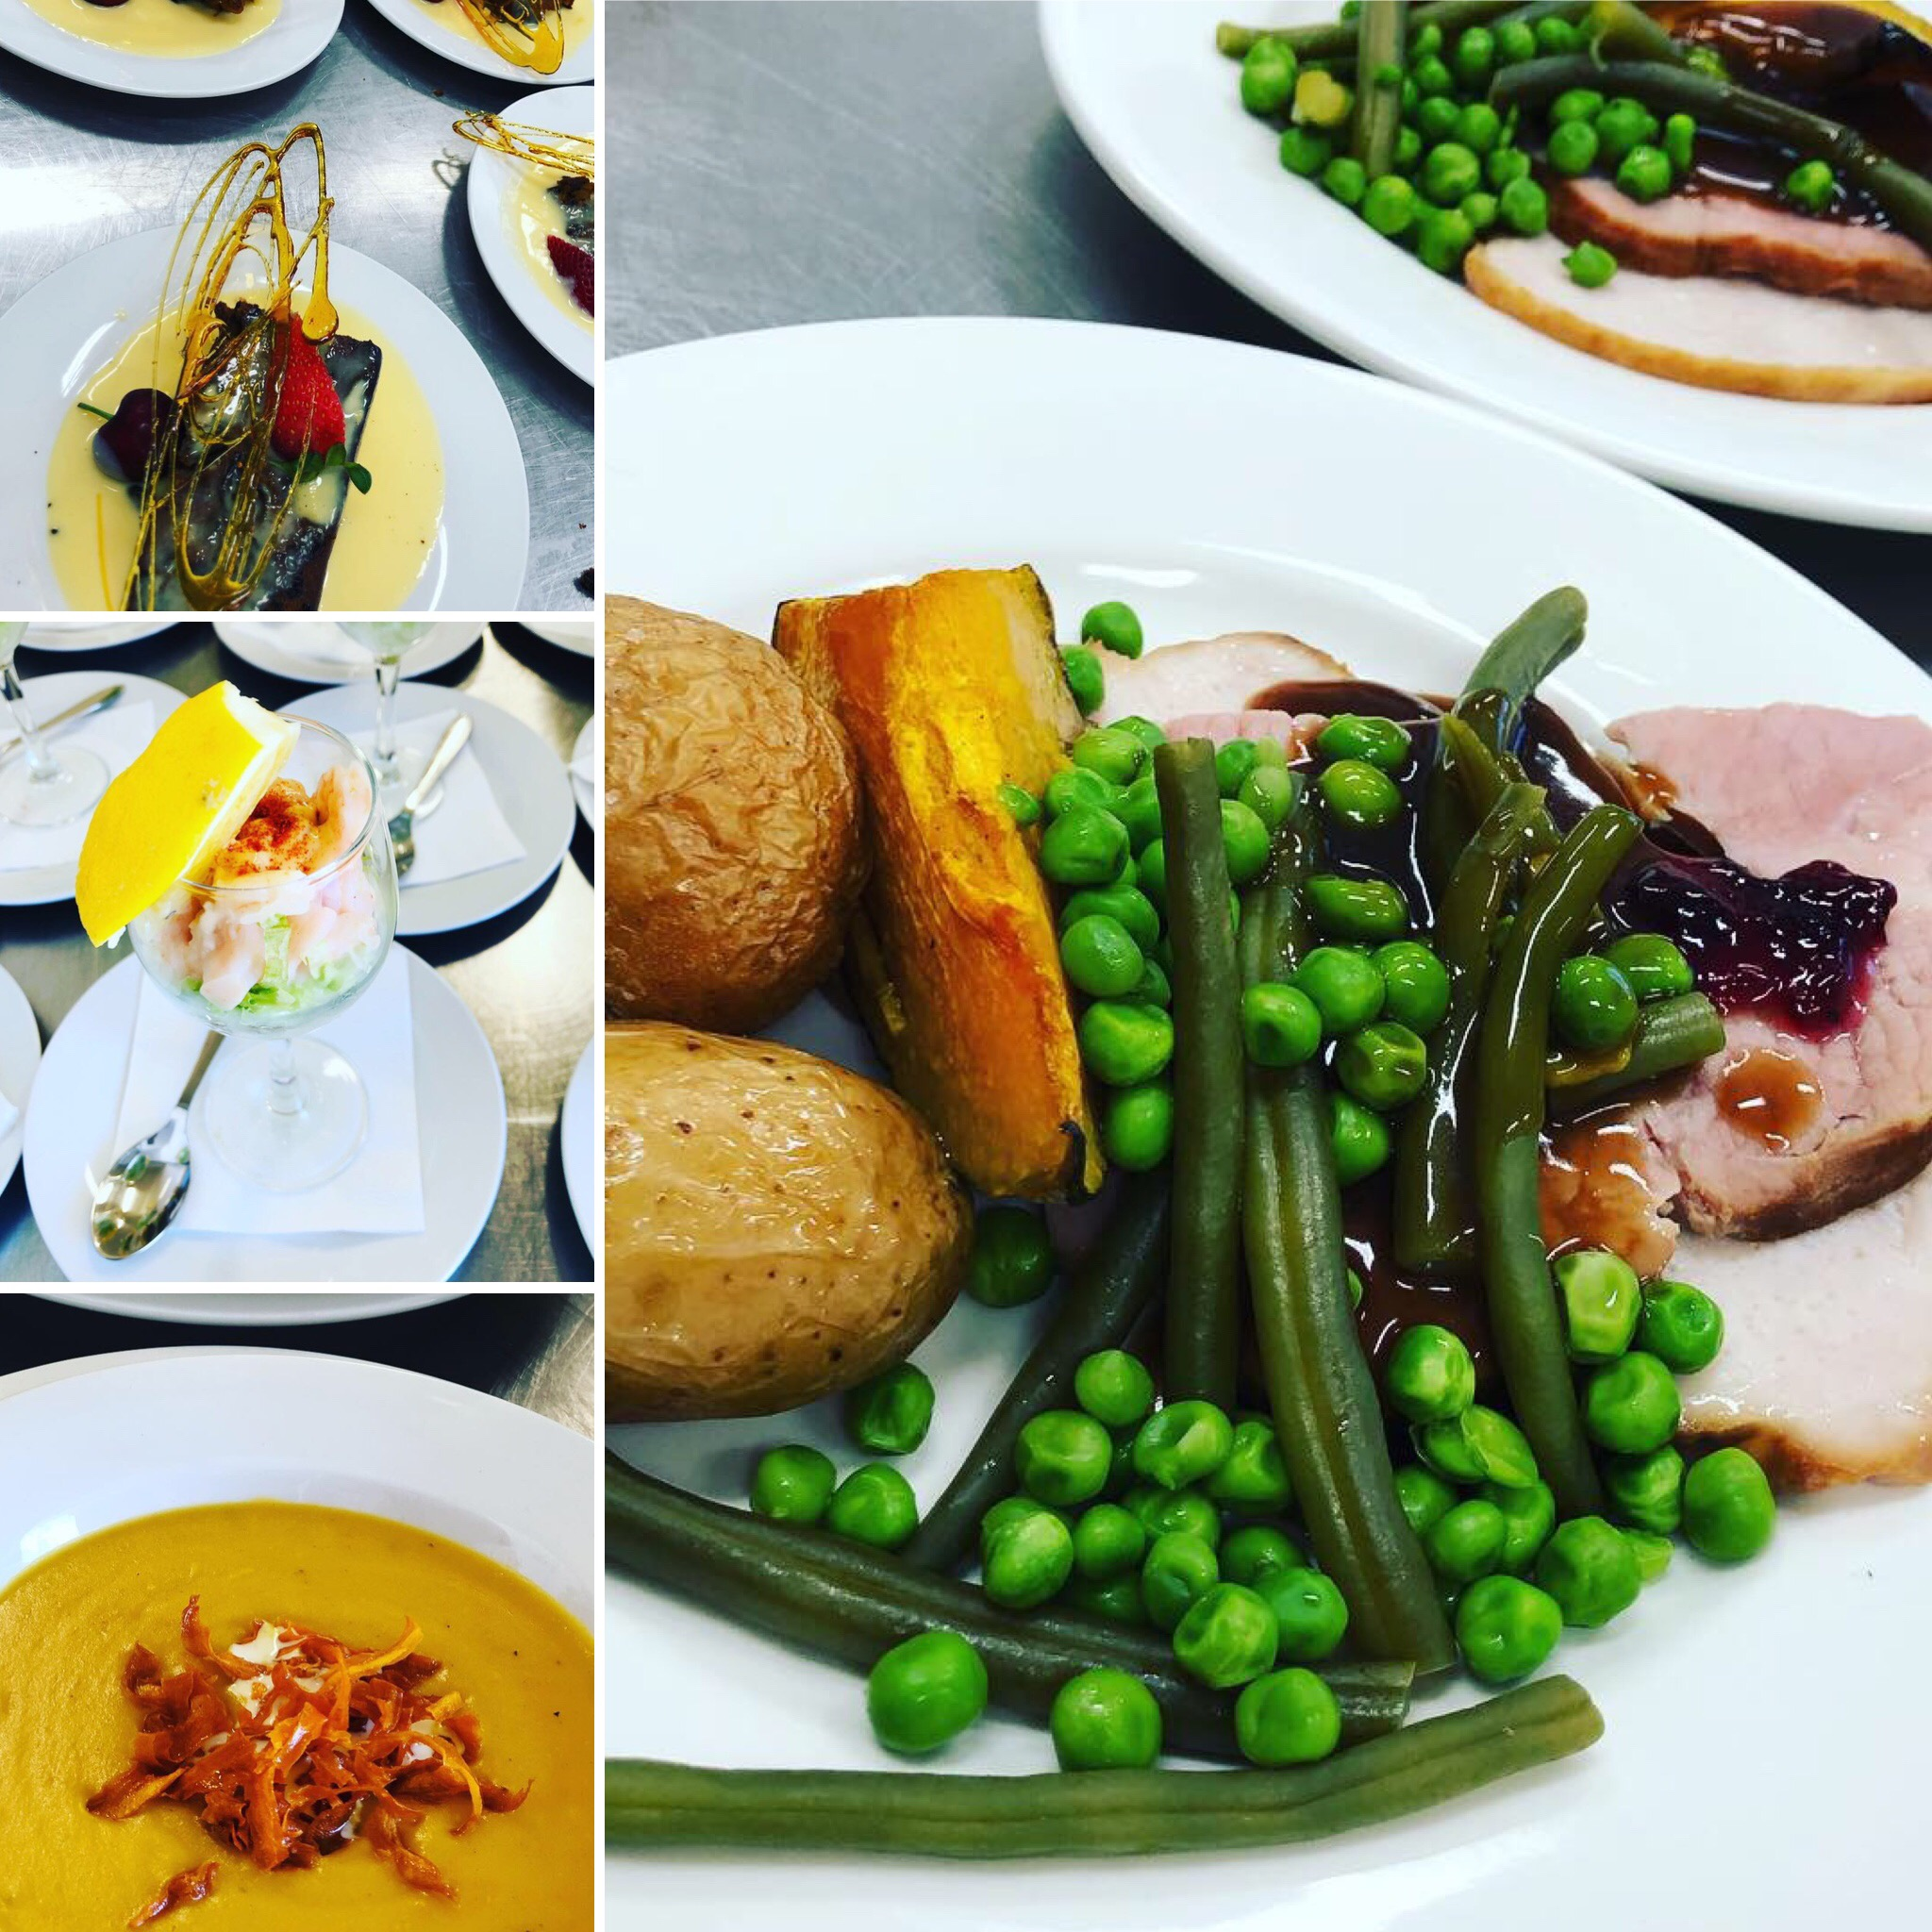 3 Course Meal Catering